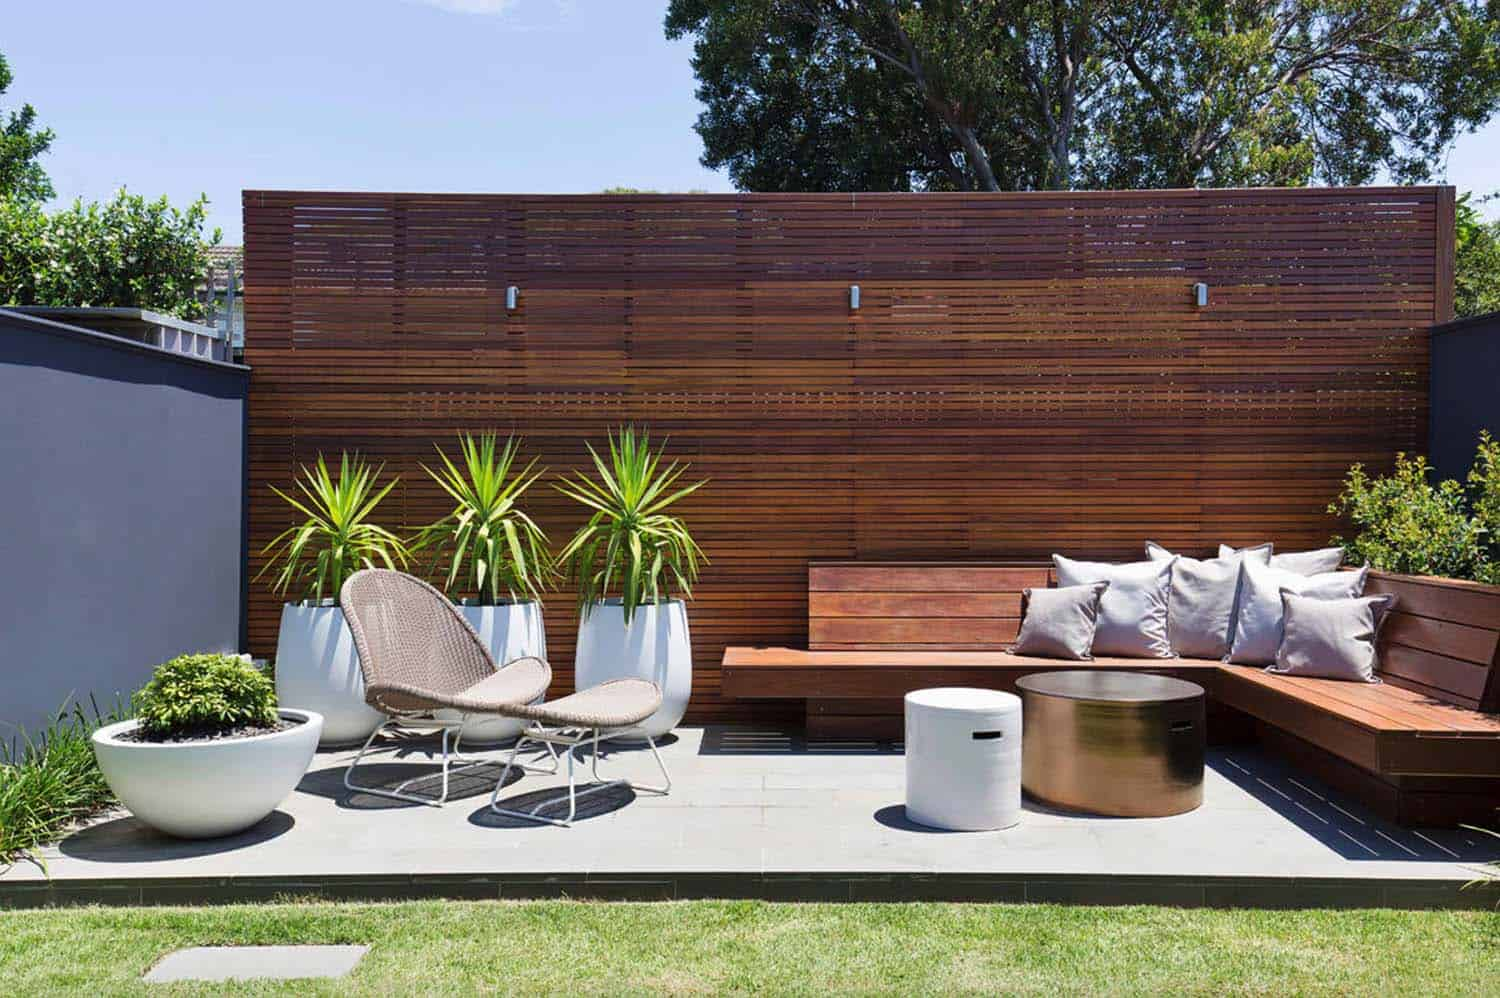 35 Brilliant and inspiring patio ideas for outdoor living ... on Garden Entertainment Area Ideas id=90994